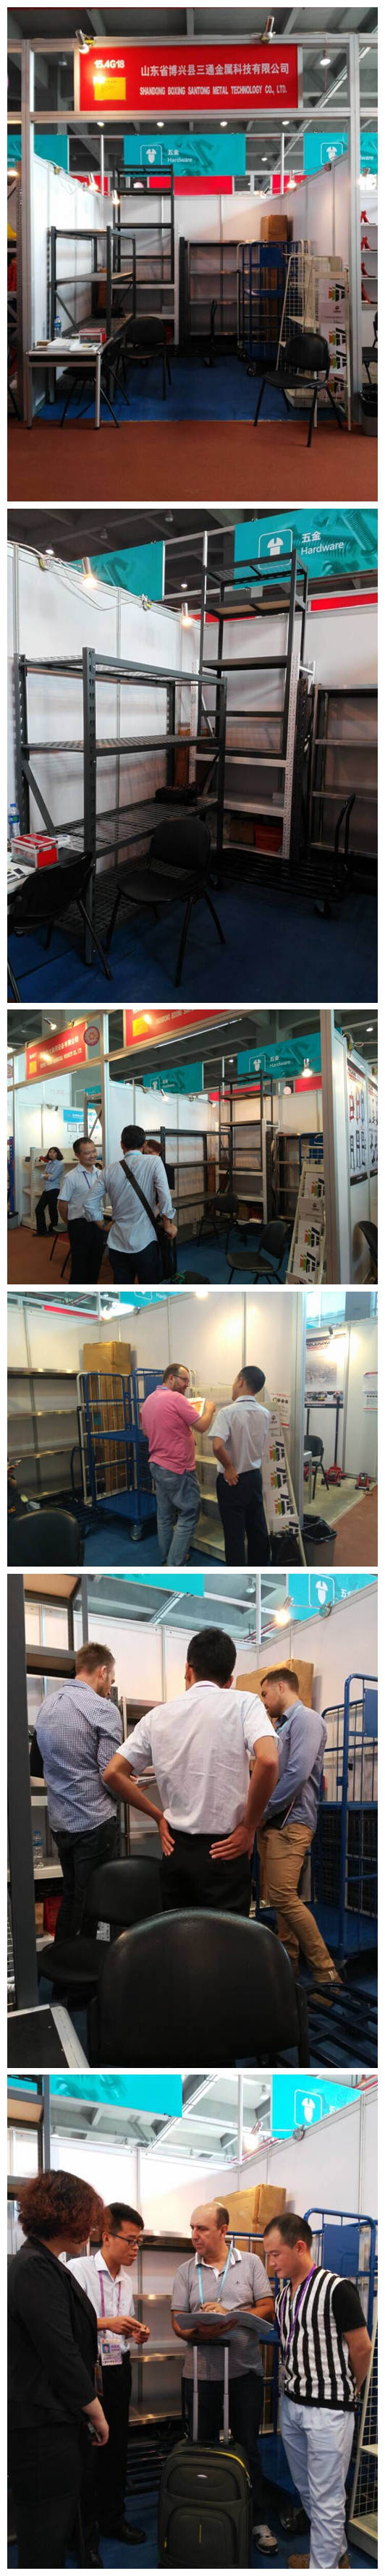 The 118th Canton Fair